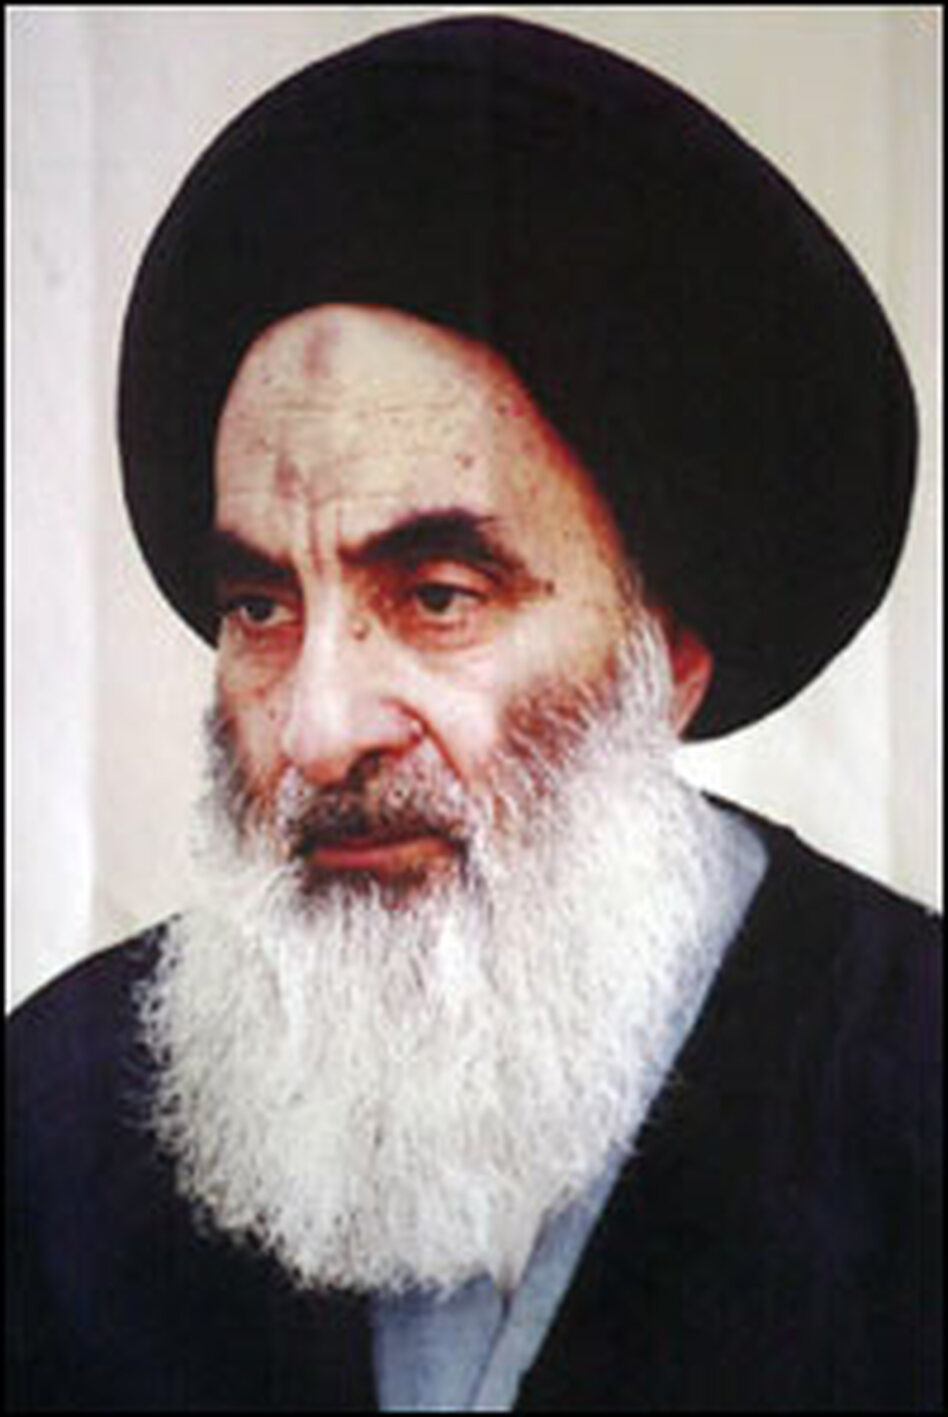 After the U.S.-led invasion in 2003, Grand Ayatollah Ali al-Sistani helped unite Iraq's competing Shiite political forces into a single bloc.